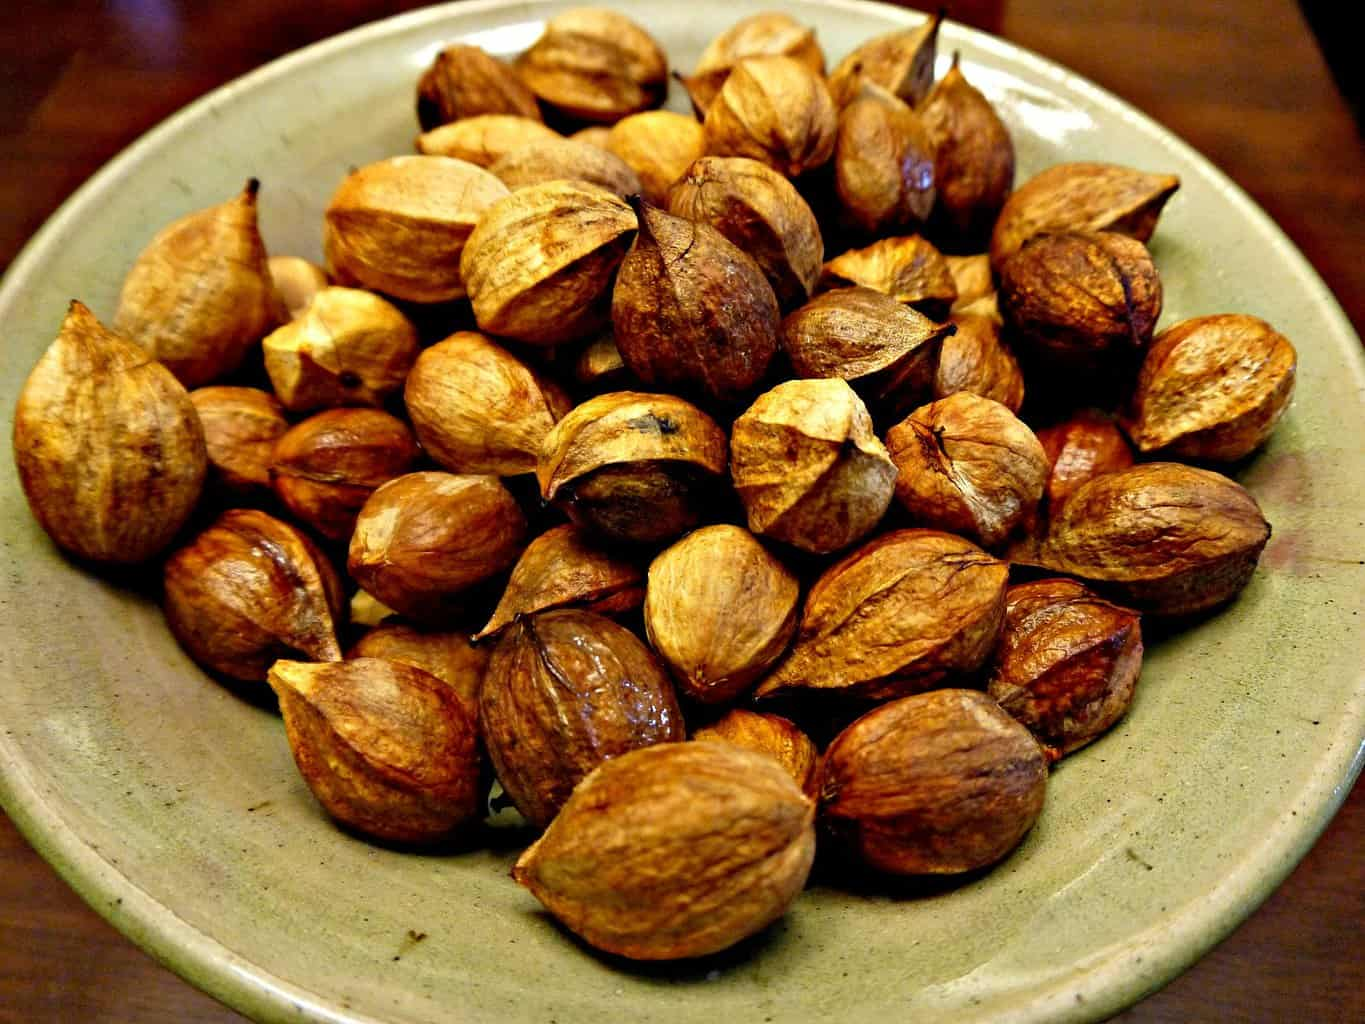 From recipe hickory nut ambrosia: picture of hickory nuts de-husked in bowl